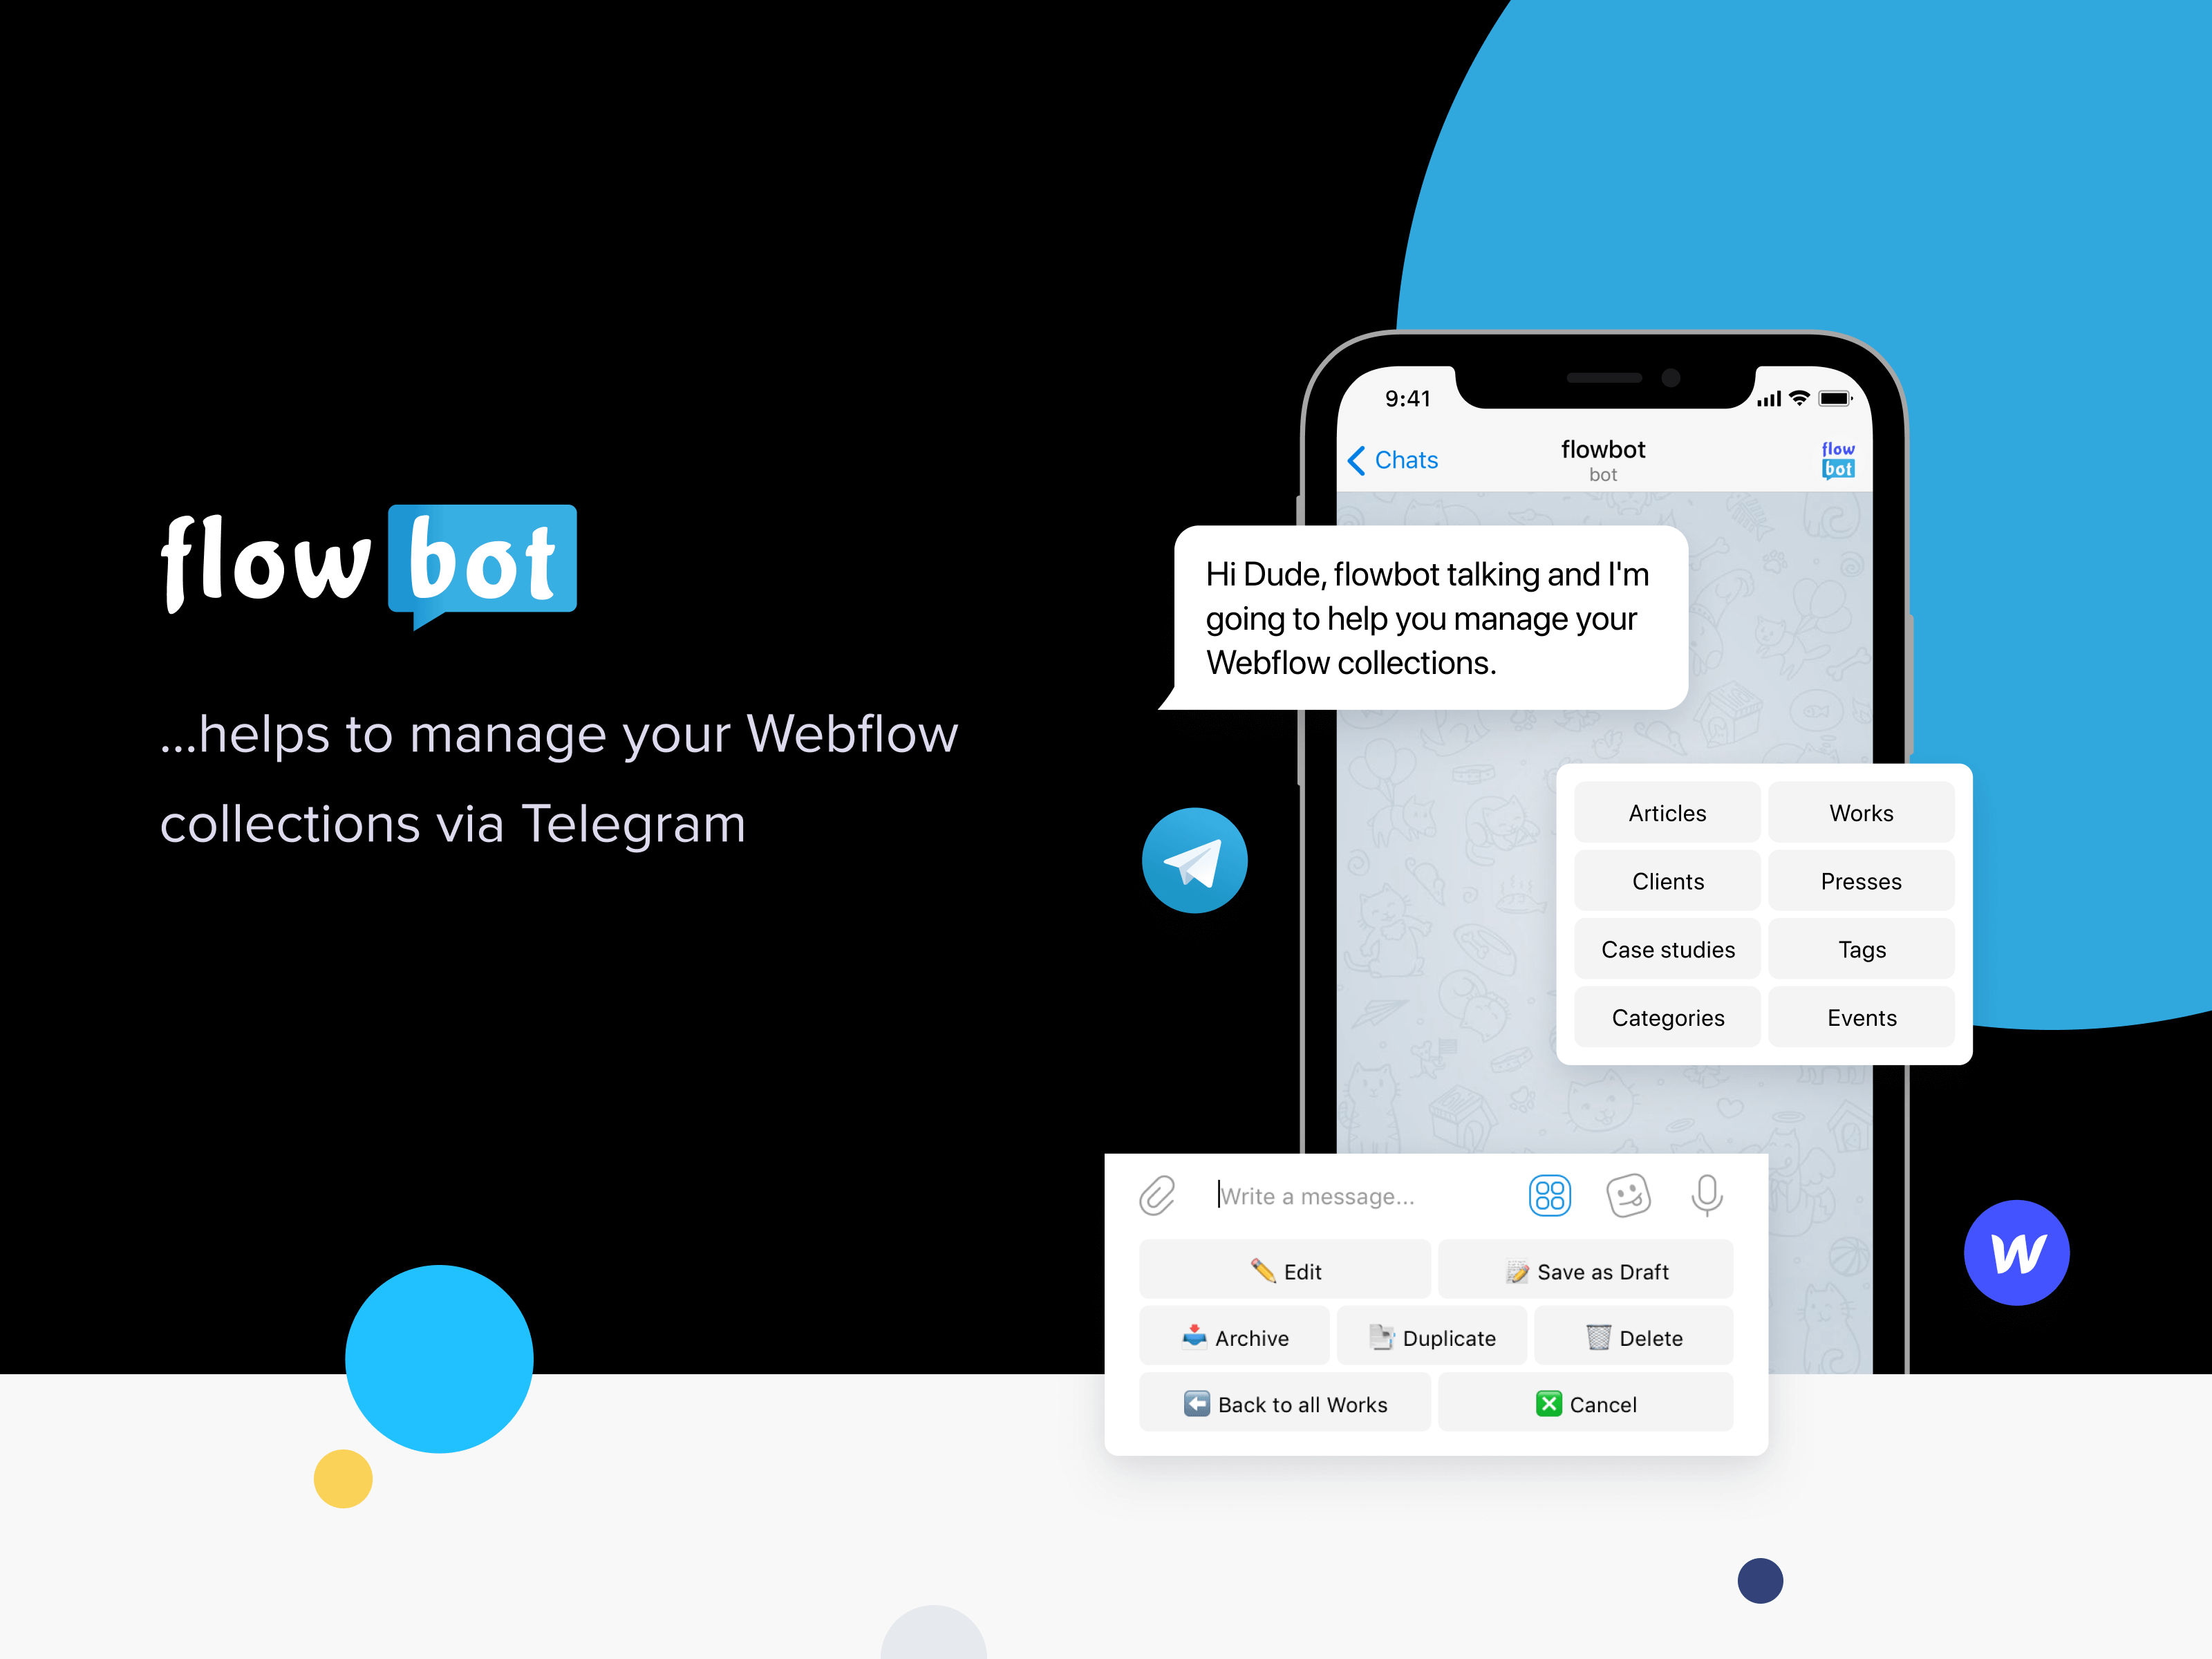 Telegram bot - Flowbot